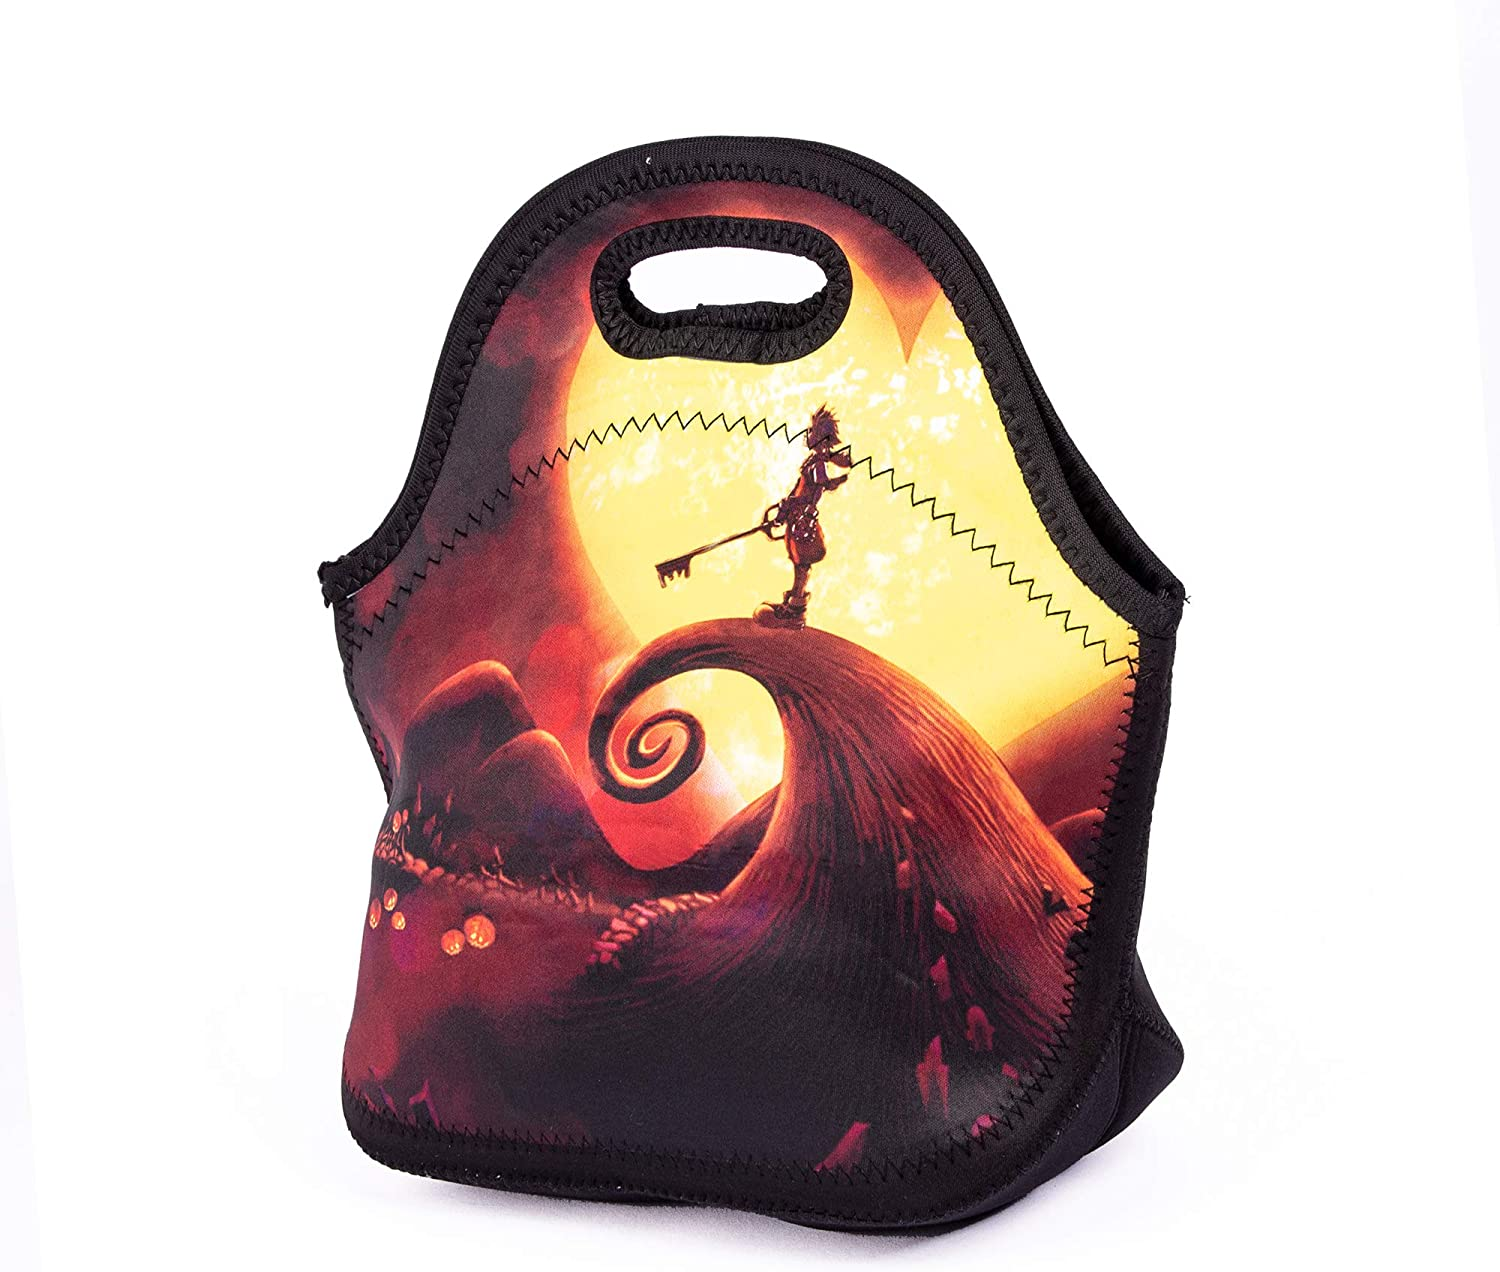 Women Kids Boys Girls Nightmare Before Christmas Lunch Bag Funny Kingdom Heart Lunch Box Reusable Storage Bags Insulated Container for School Picnic Carrying Lunchbox Organizer For Men Adults